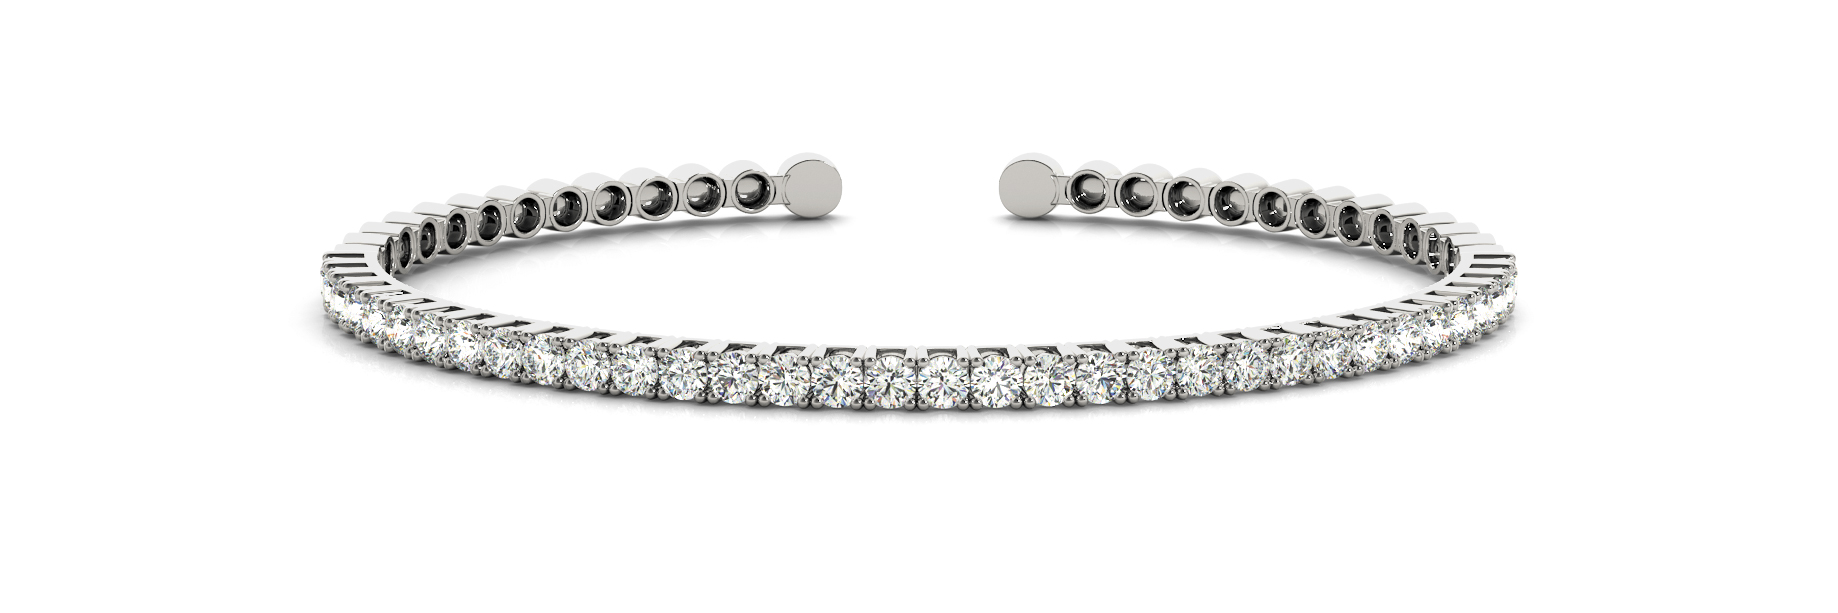 1.05 Carat Round Diamond Open Bangle in White Gold